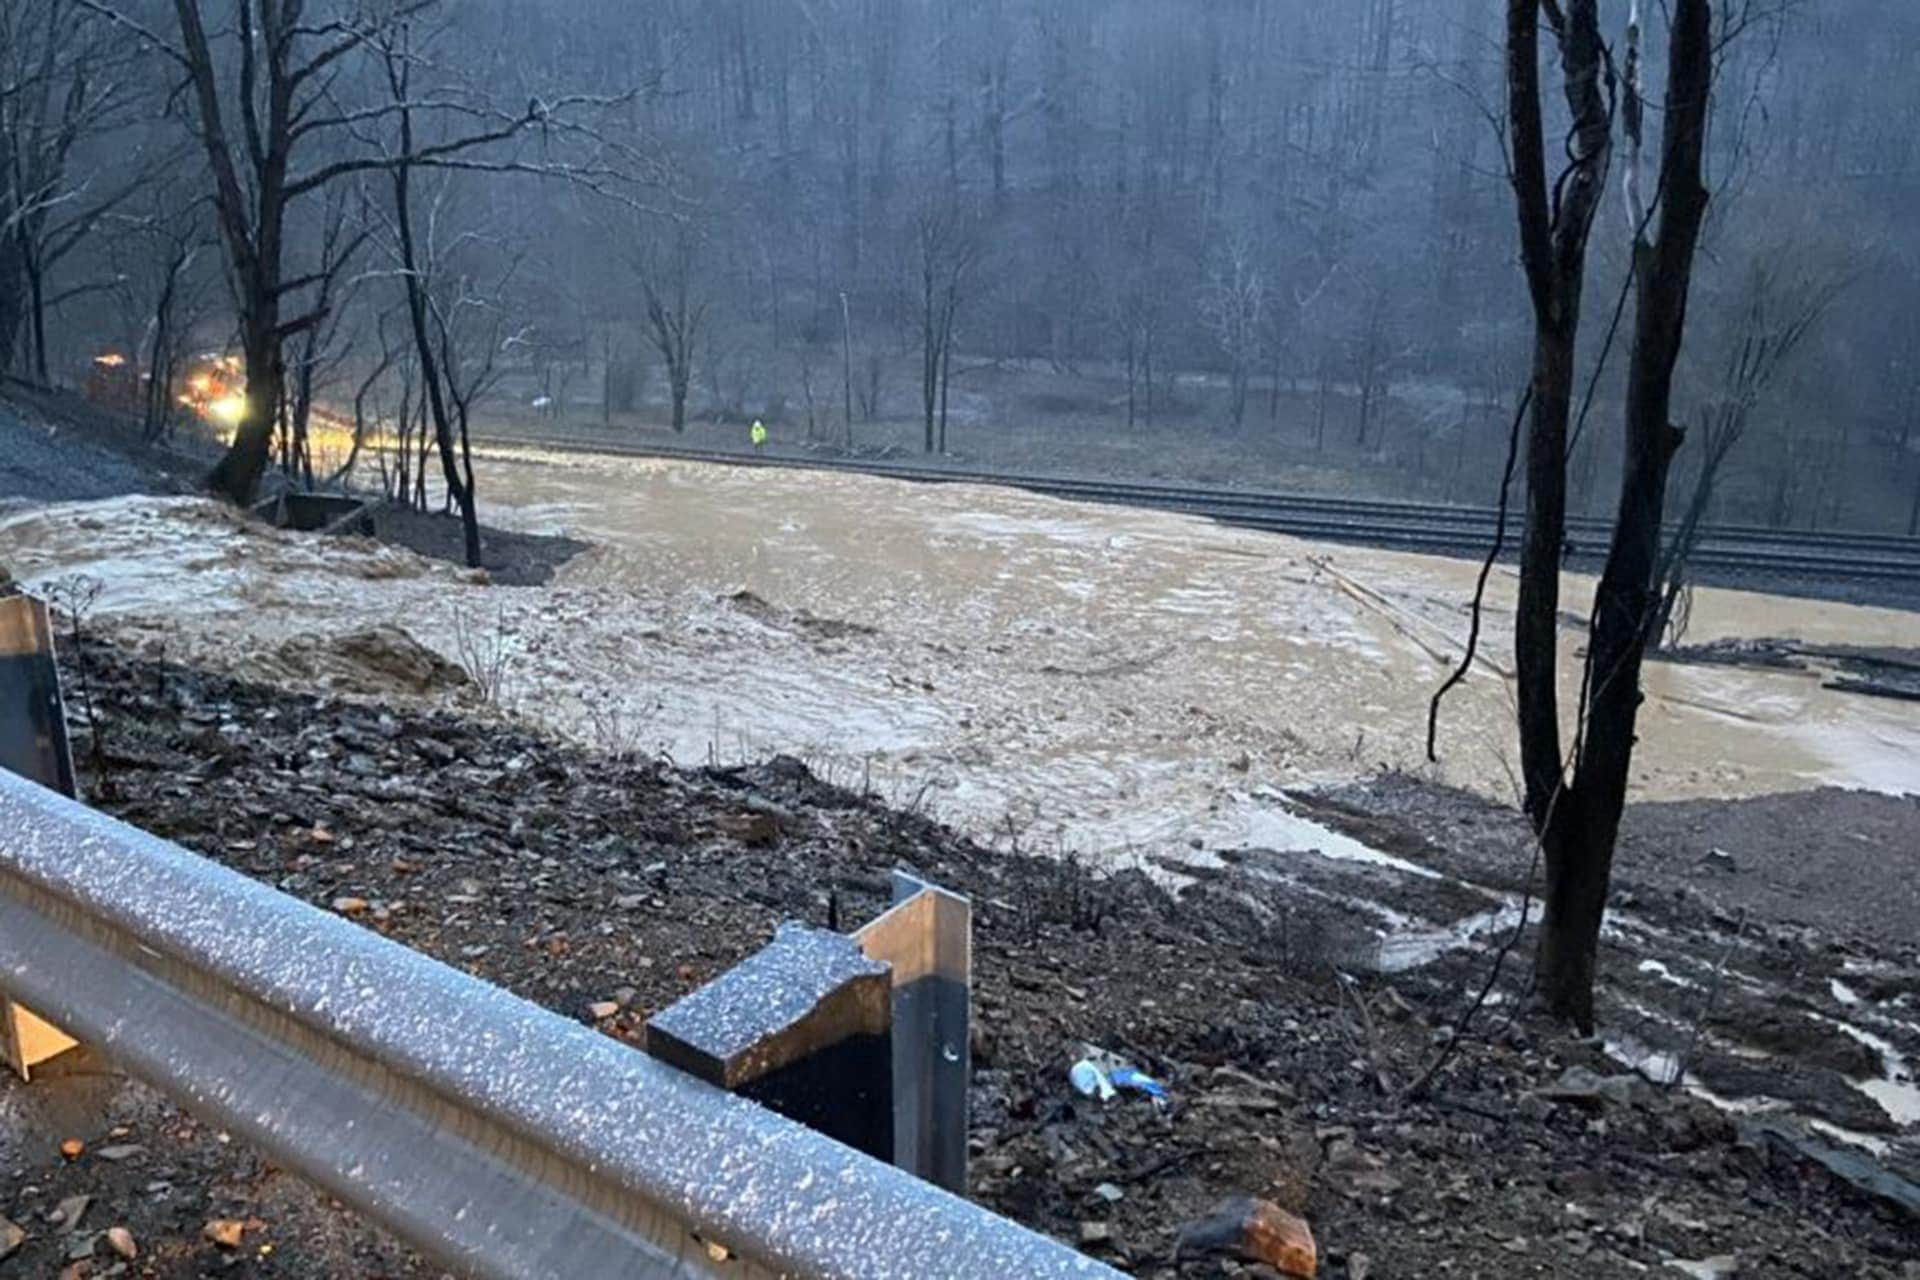 High water and mud slides causing road closures across southern West Virginia